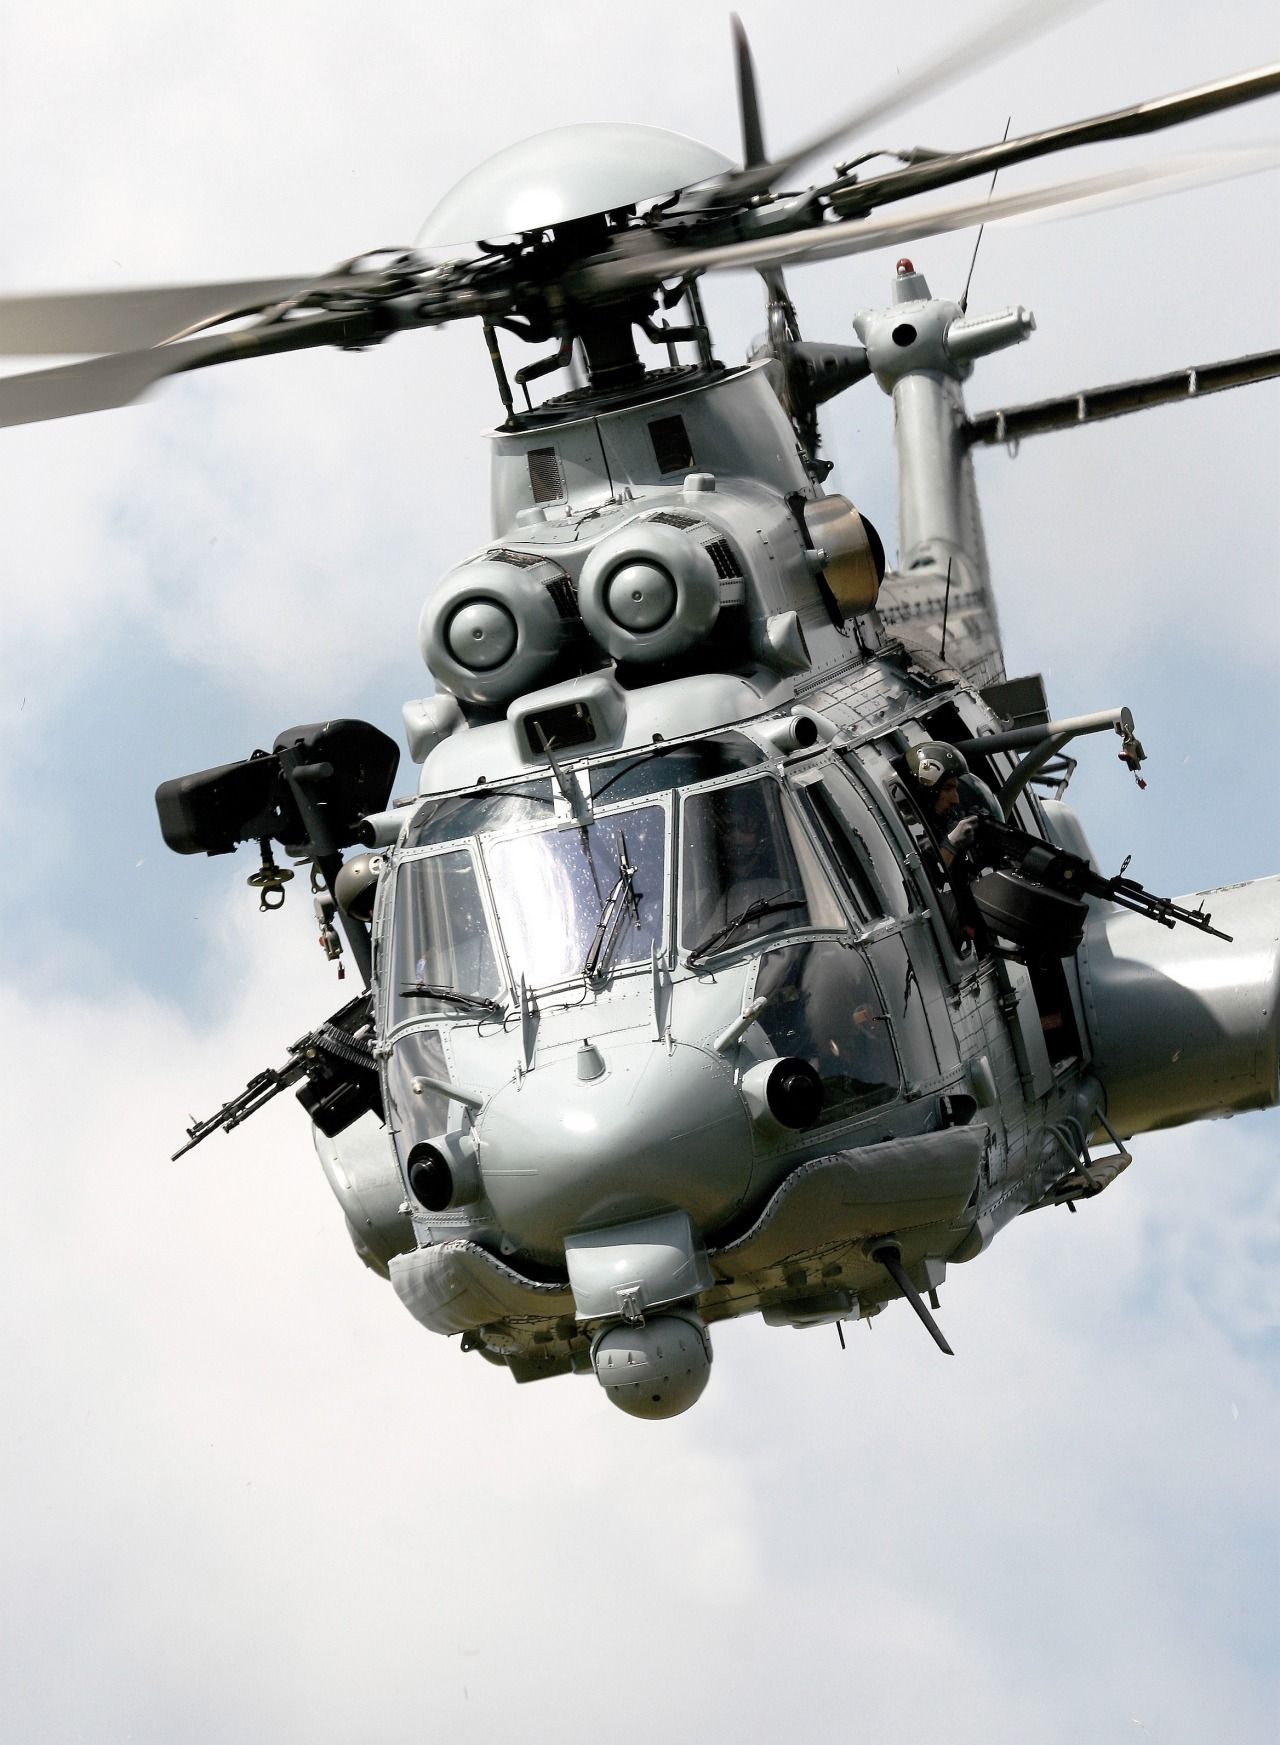 This helicopter is an Eurocopter EC 725 Super Cougar MkII ...